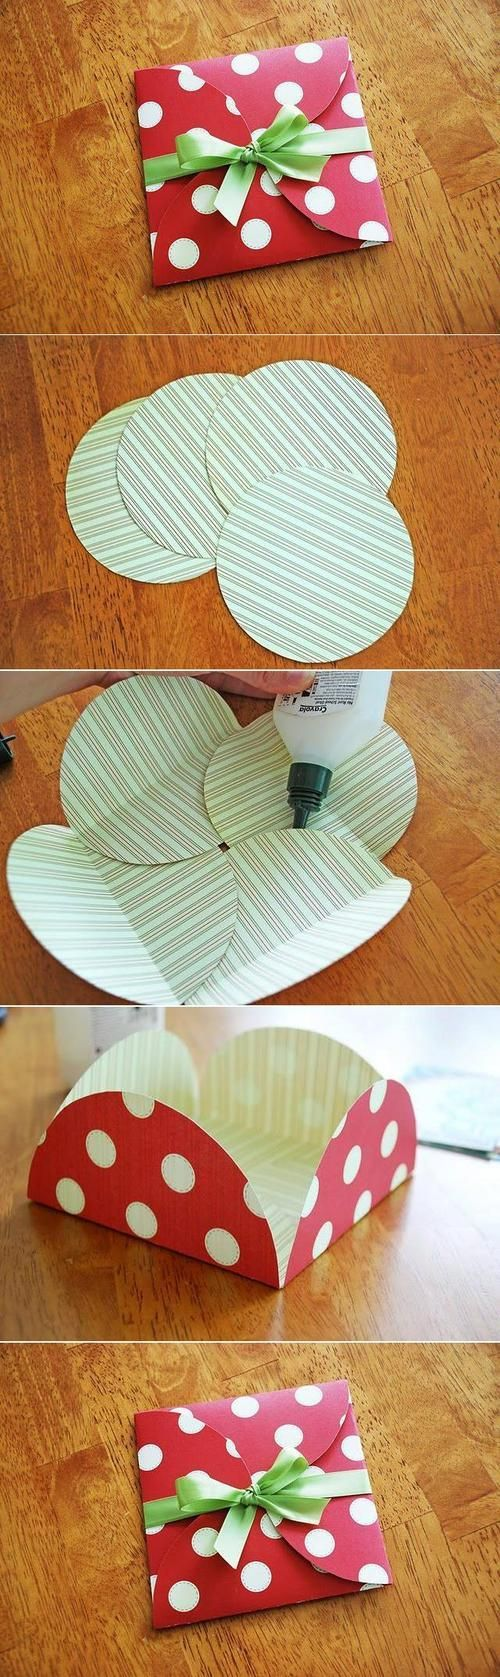 clever envelope idea, could use i for cd wrapping ¡me gusta!